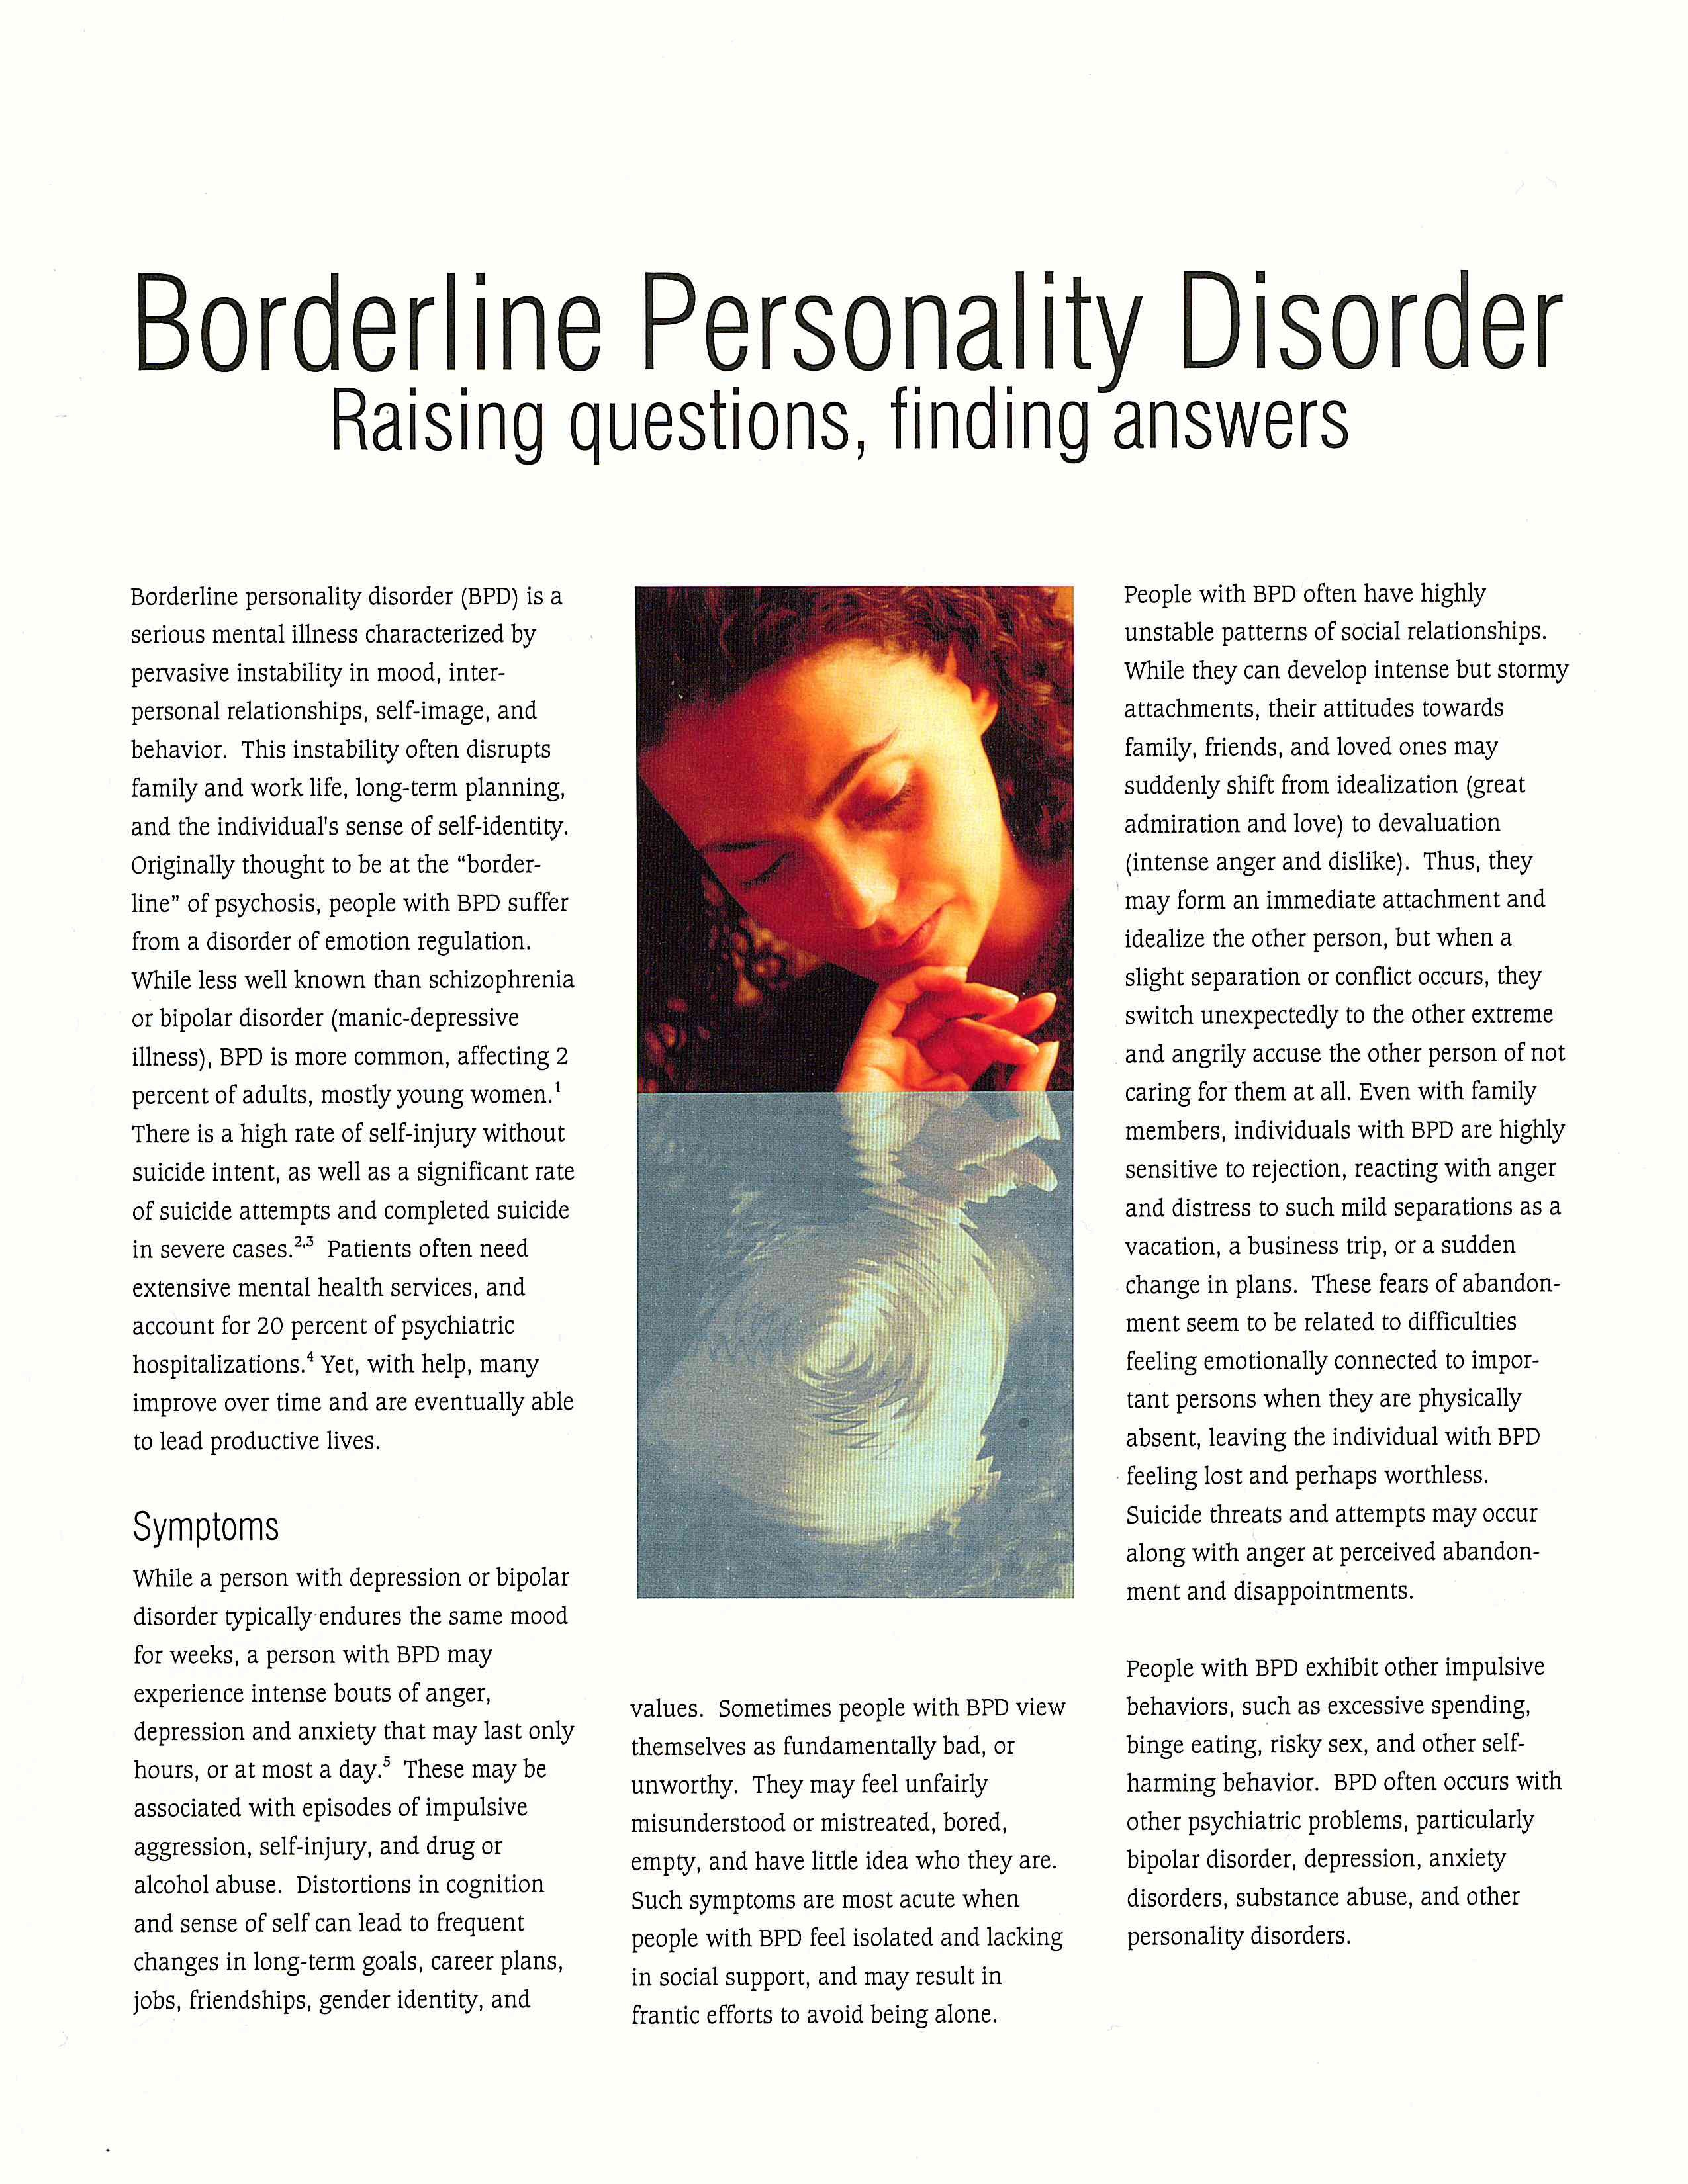 borderlinepersonalitydisorder2001.jpg